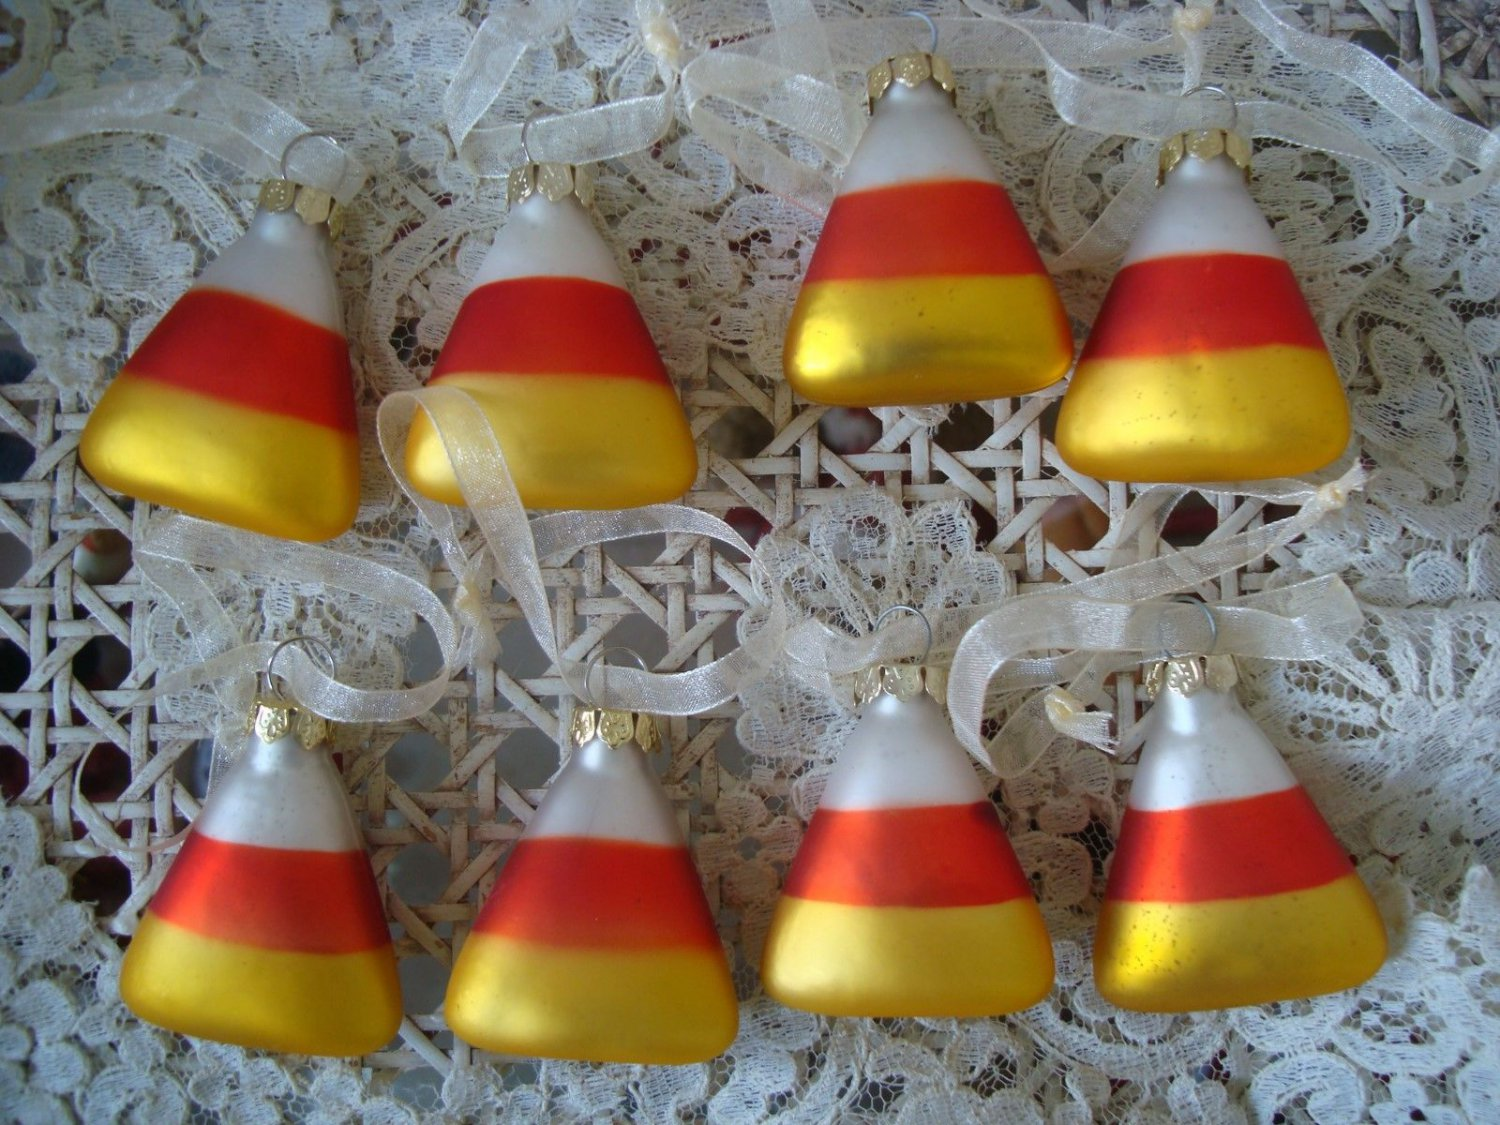 8 VINTAGE ADORABLE CANDY CORN BLOWN GLASS HALLOWEEN ORNAMENTS  ***SO CUTE***